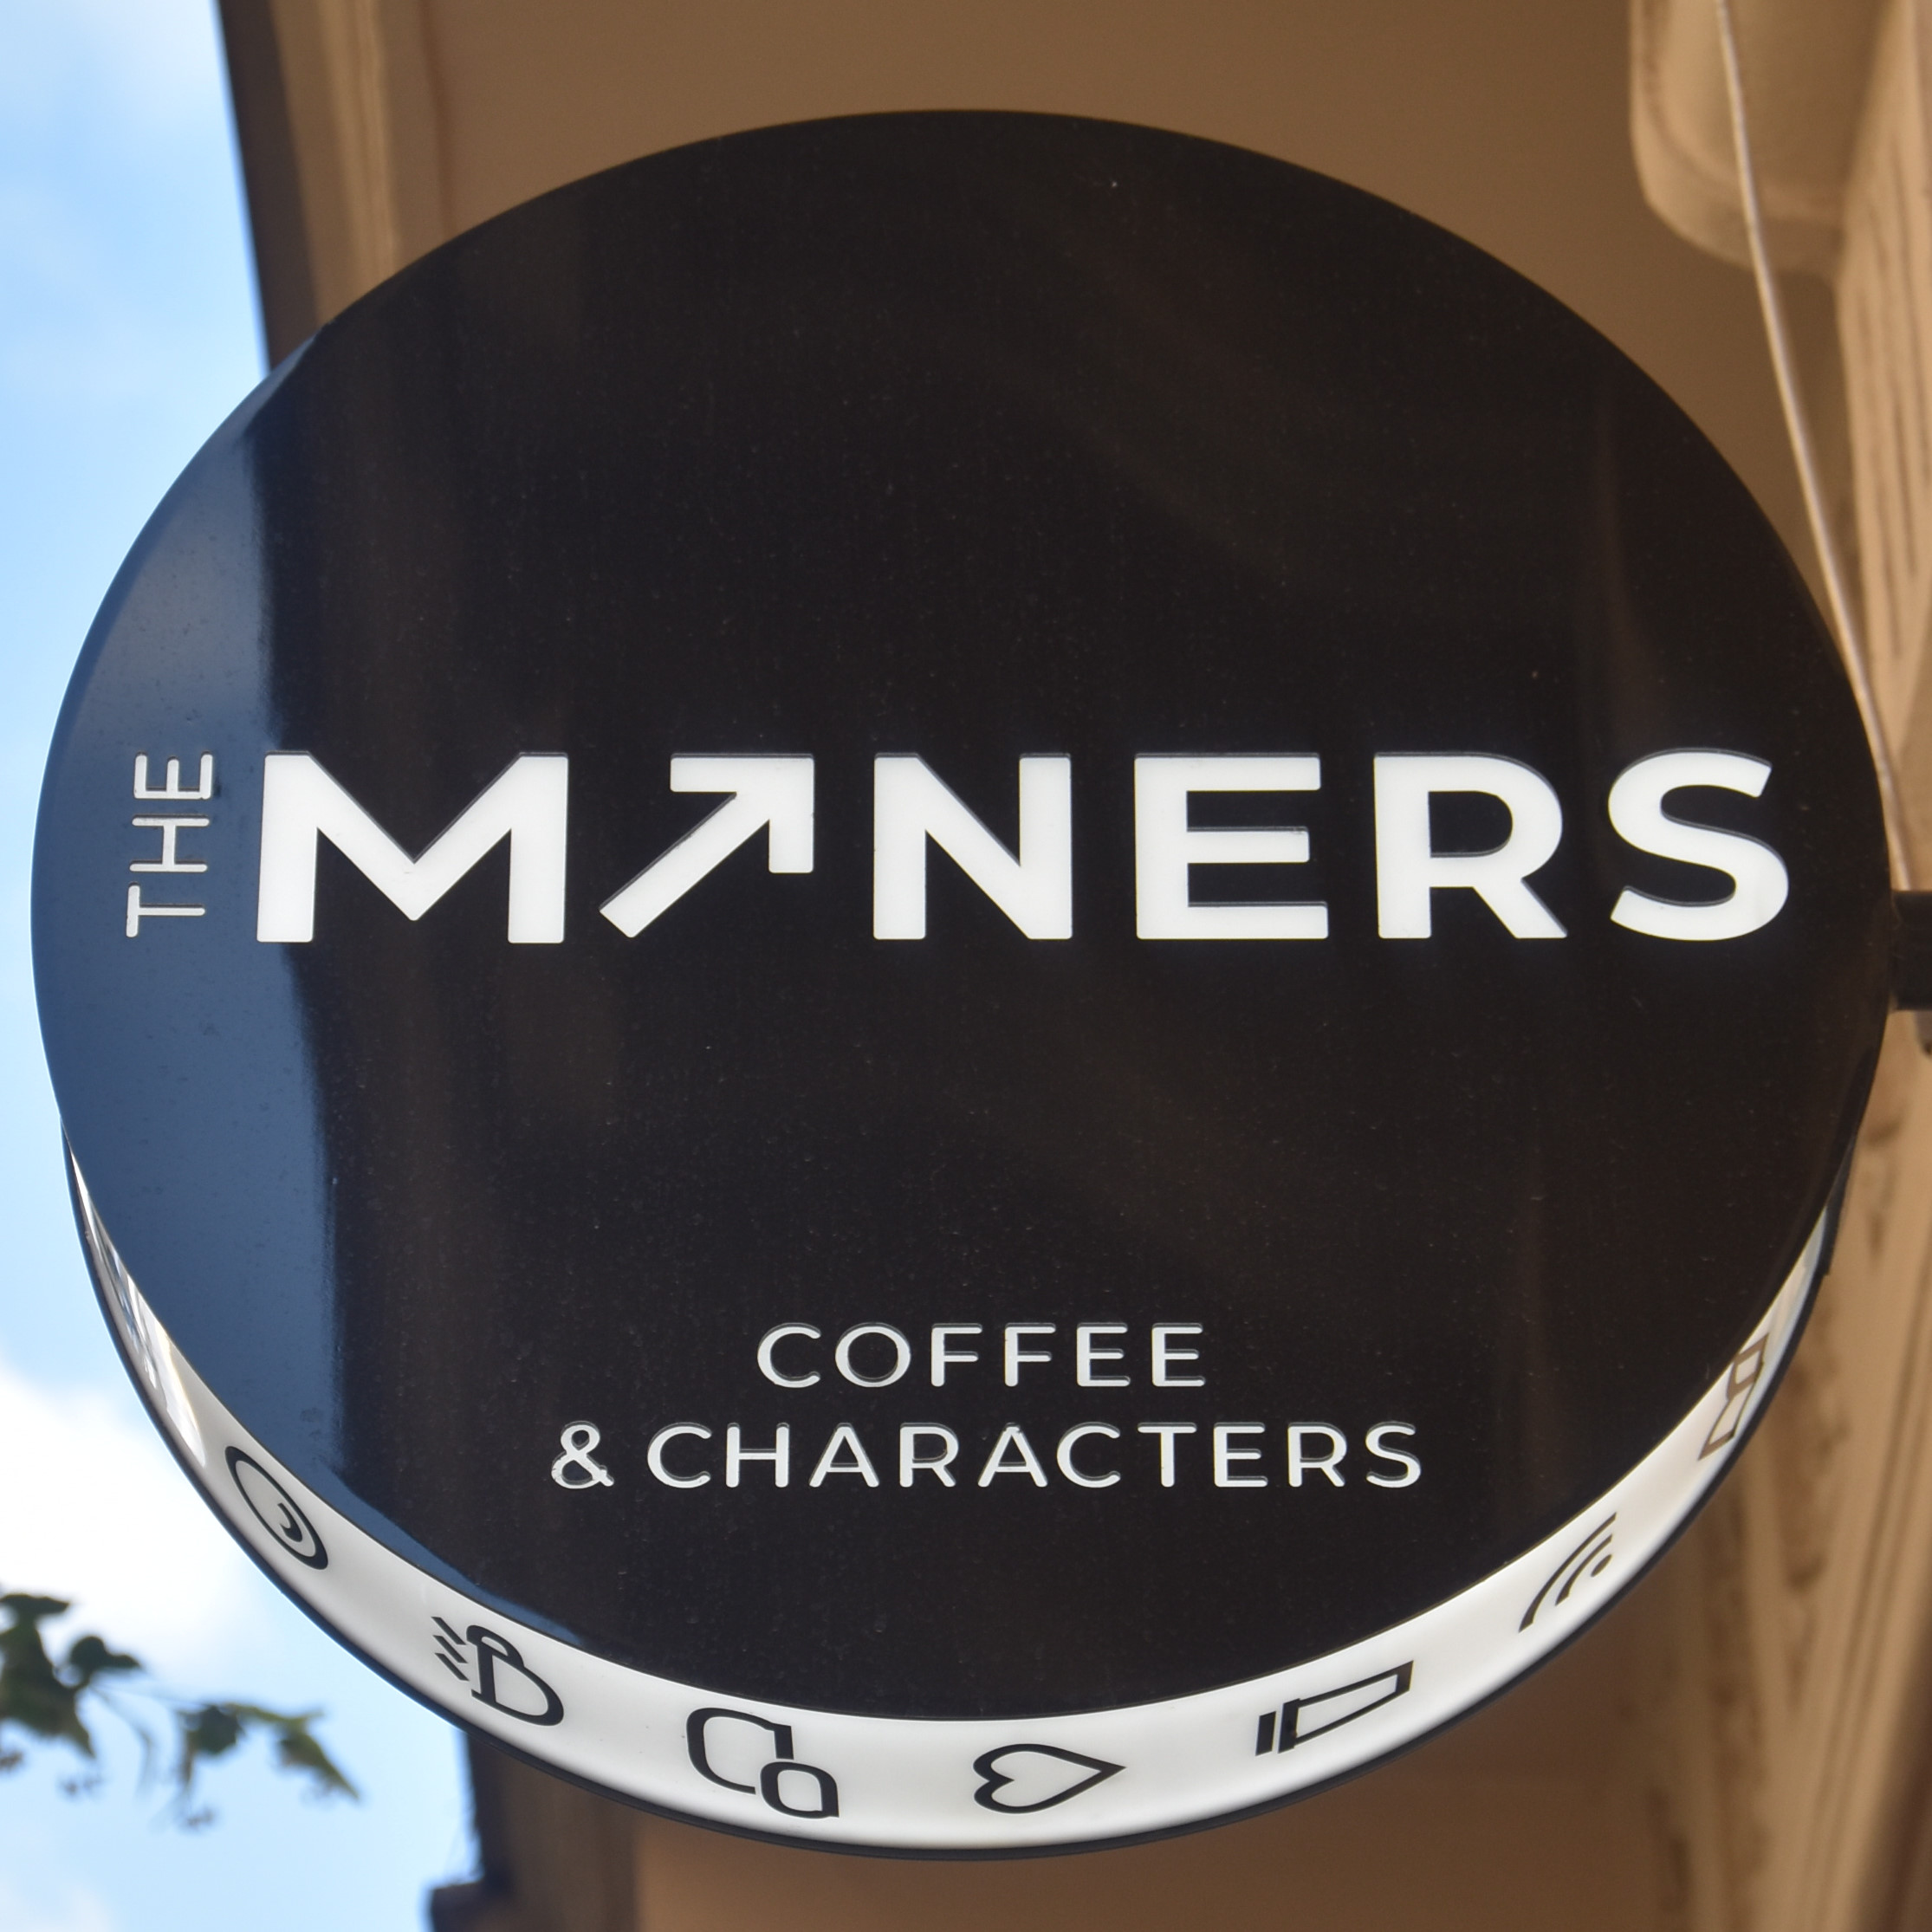 The sign from outside The Miners Coffee & Characters in Prague.